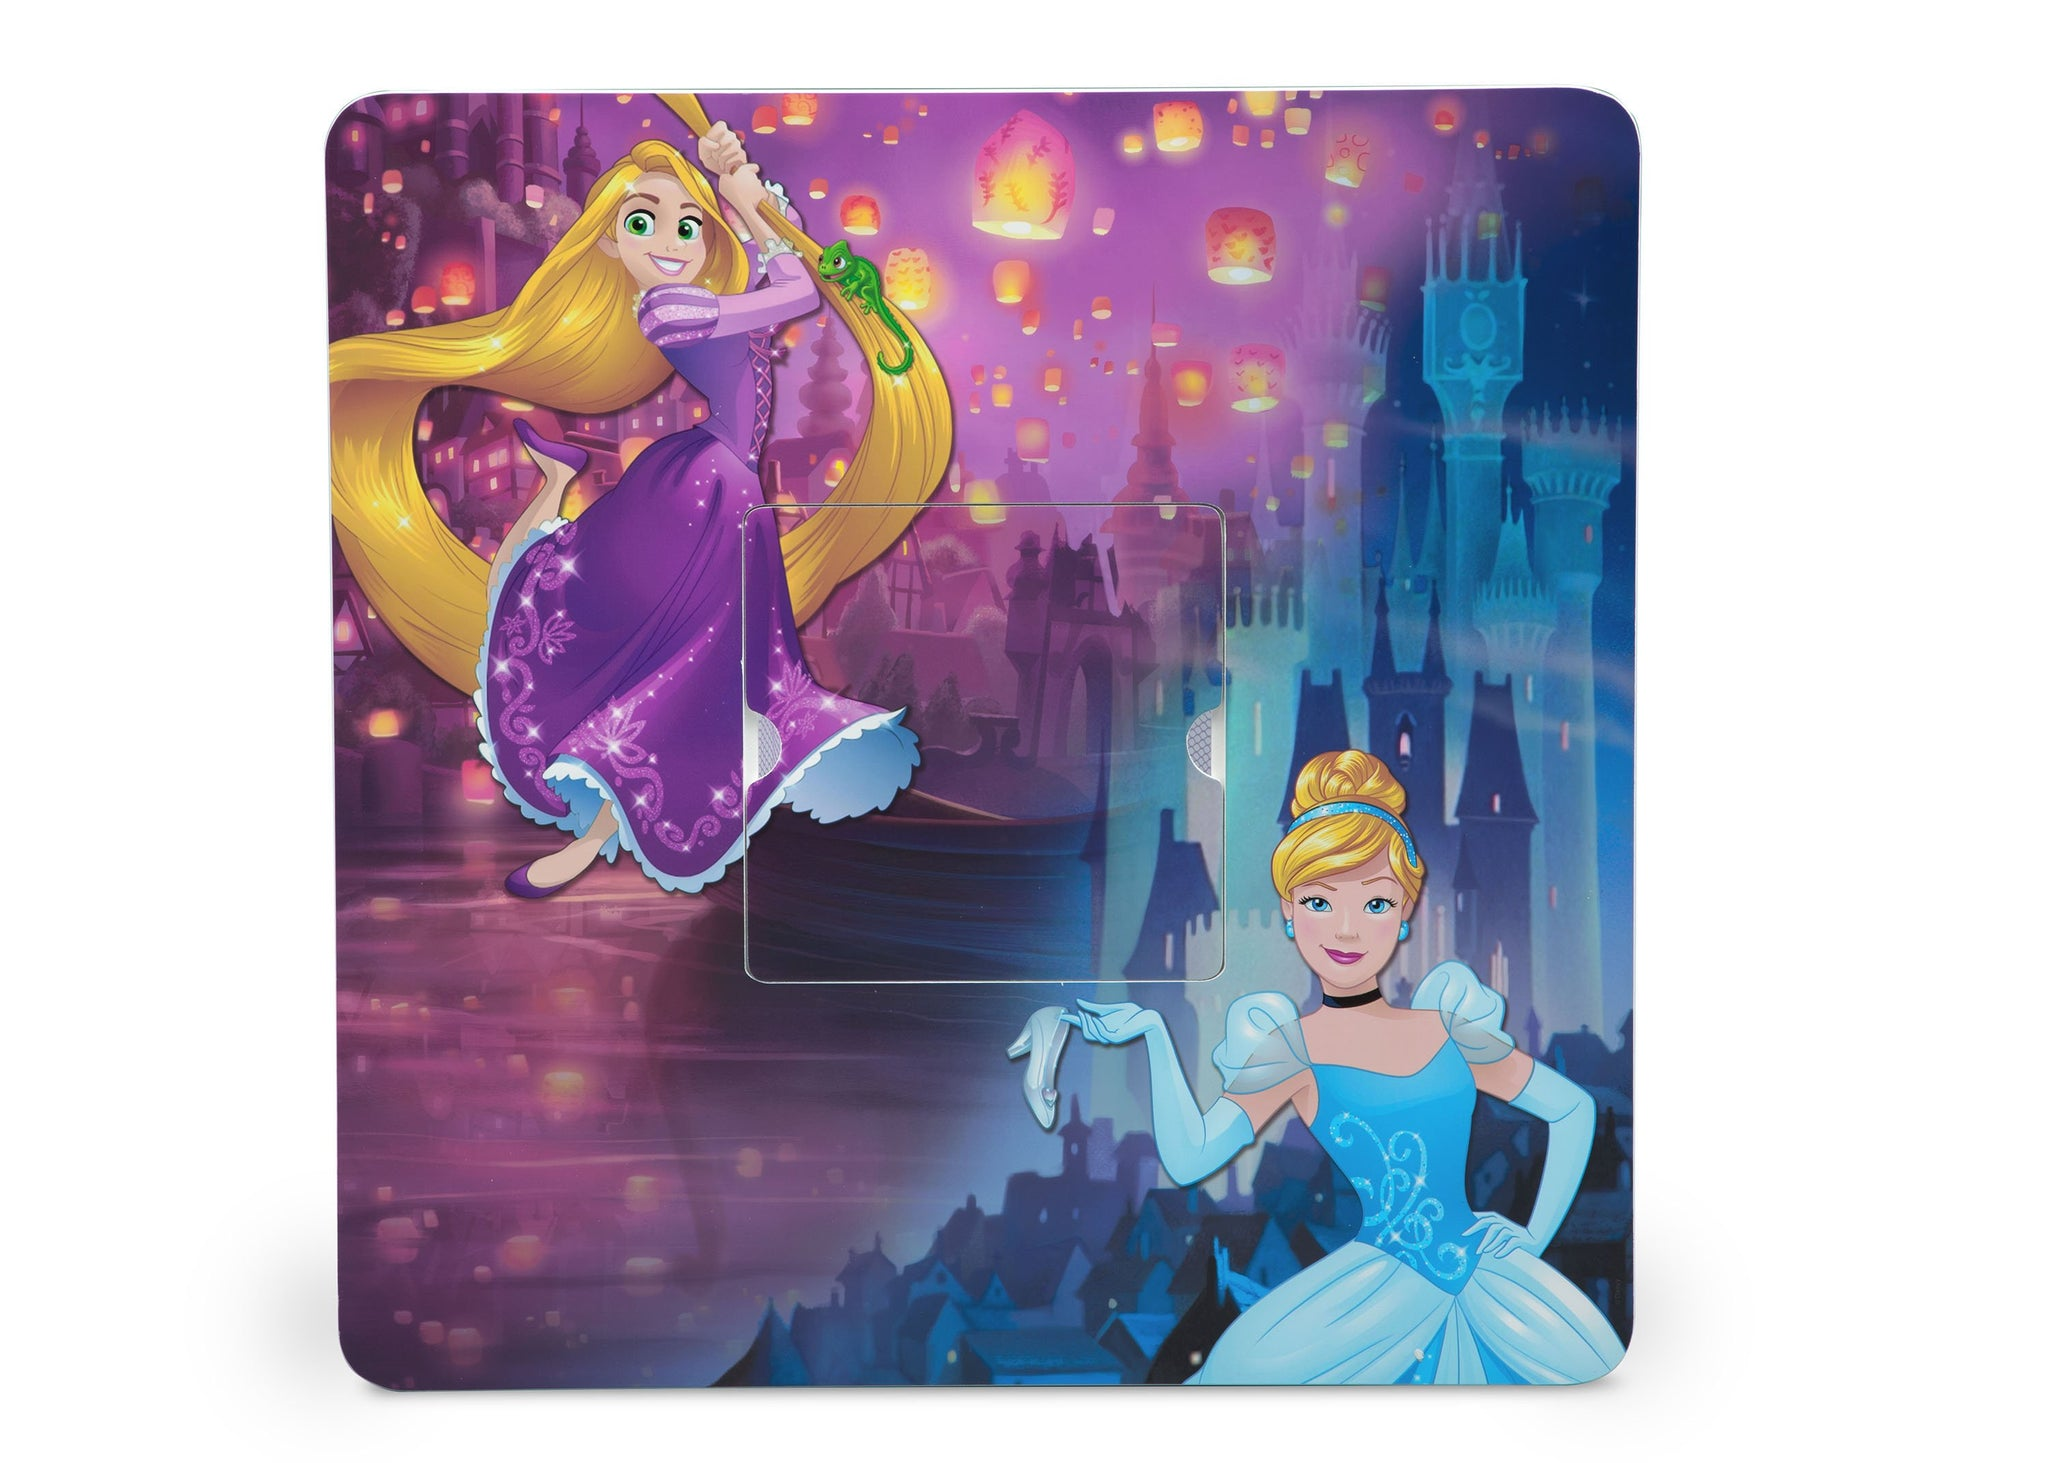 Disney Princess (1034) Table and Chair Set with Storage (TT89562PS), Birdseye view, a4a